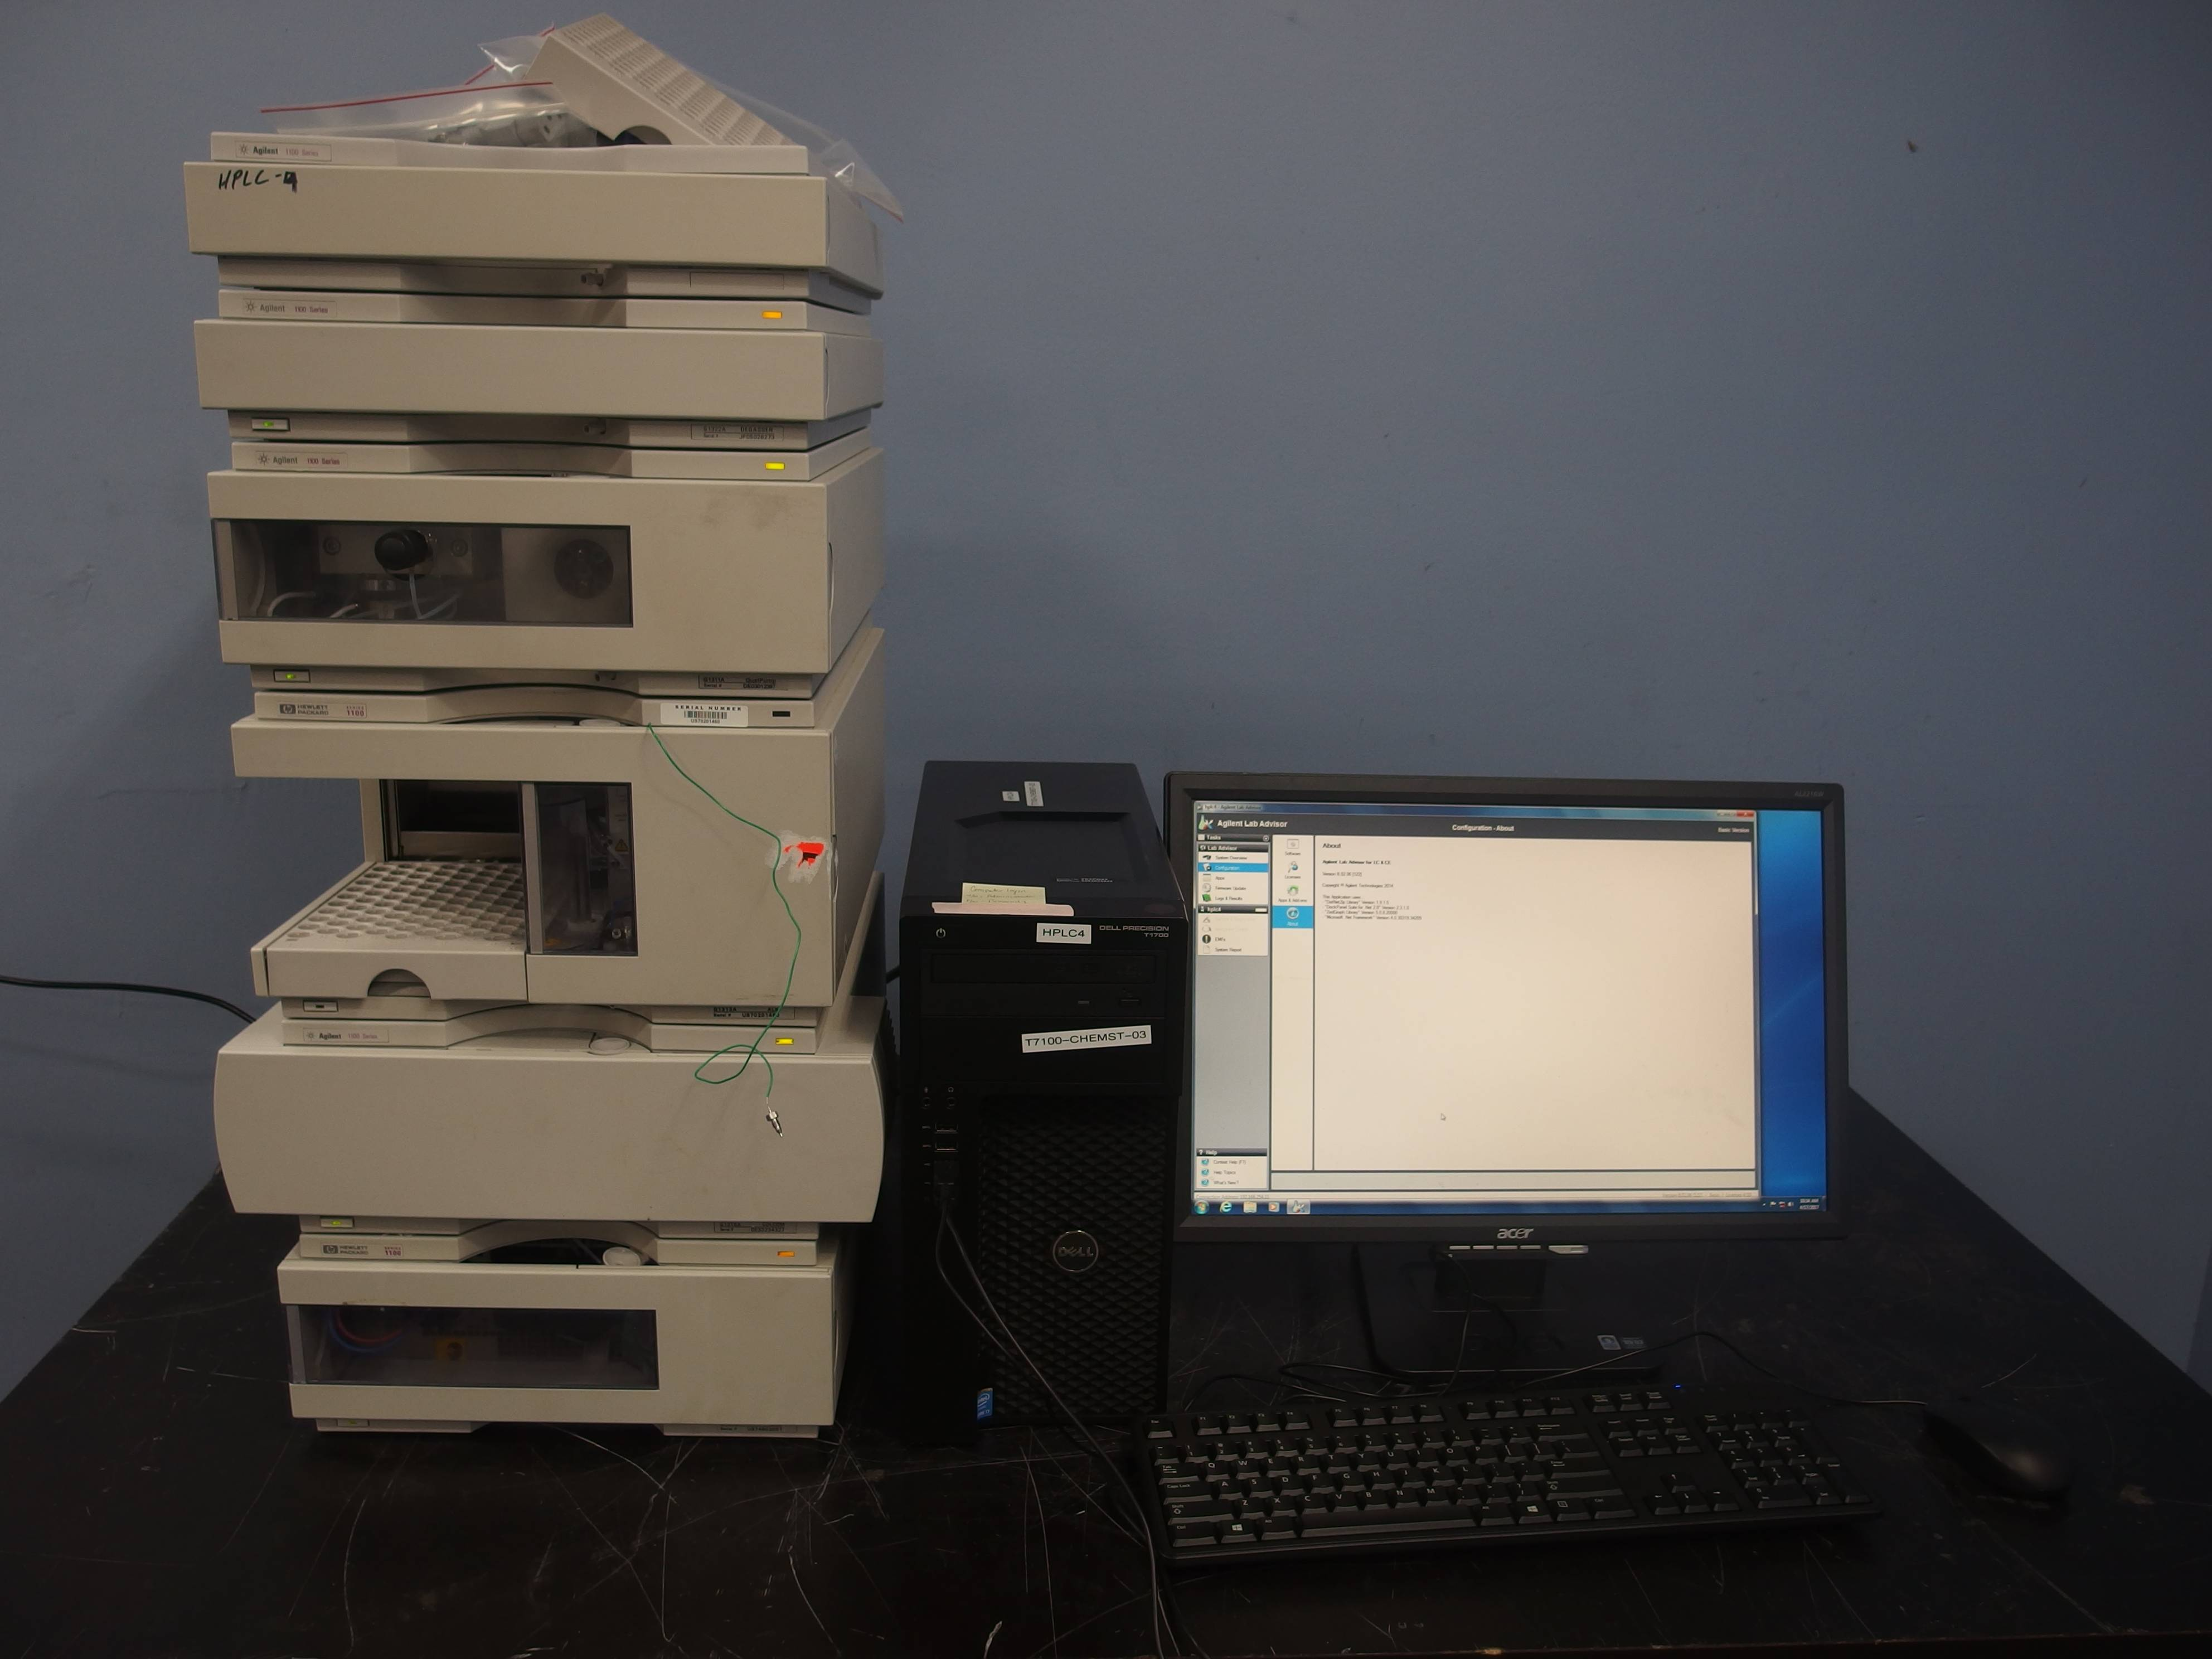 Agilent 1100 Series HPLC System With HP DAD Detector